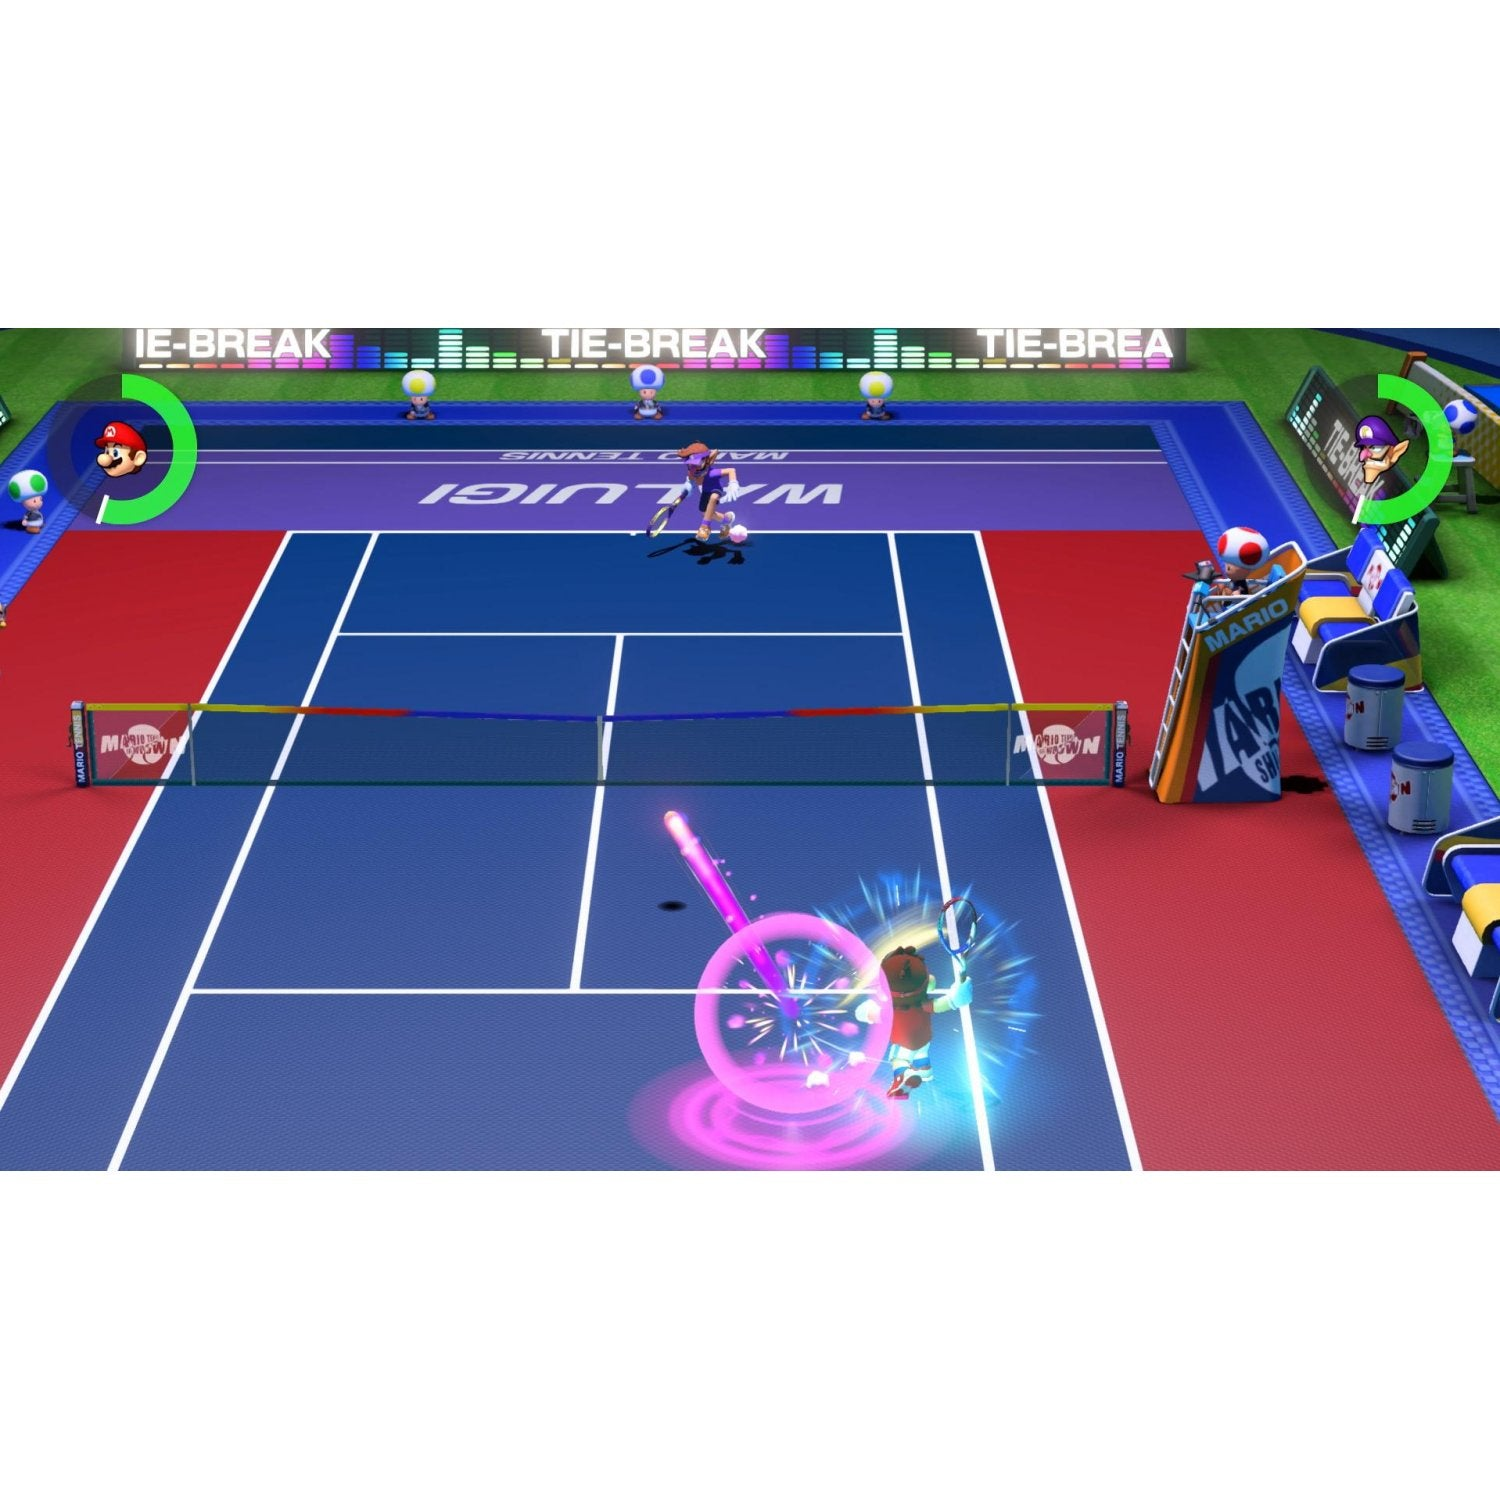 NSW Mario Tennis Aces